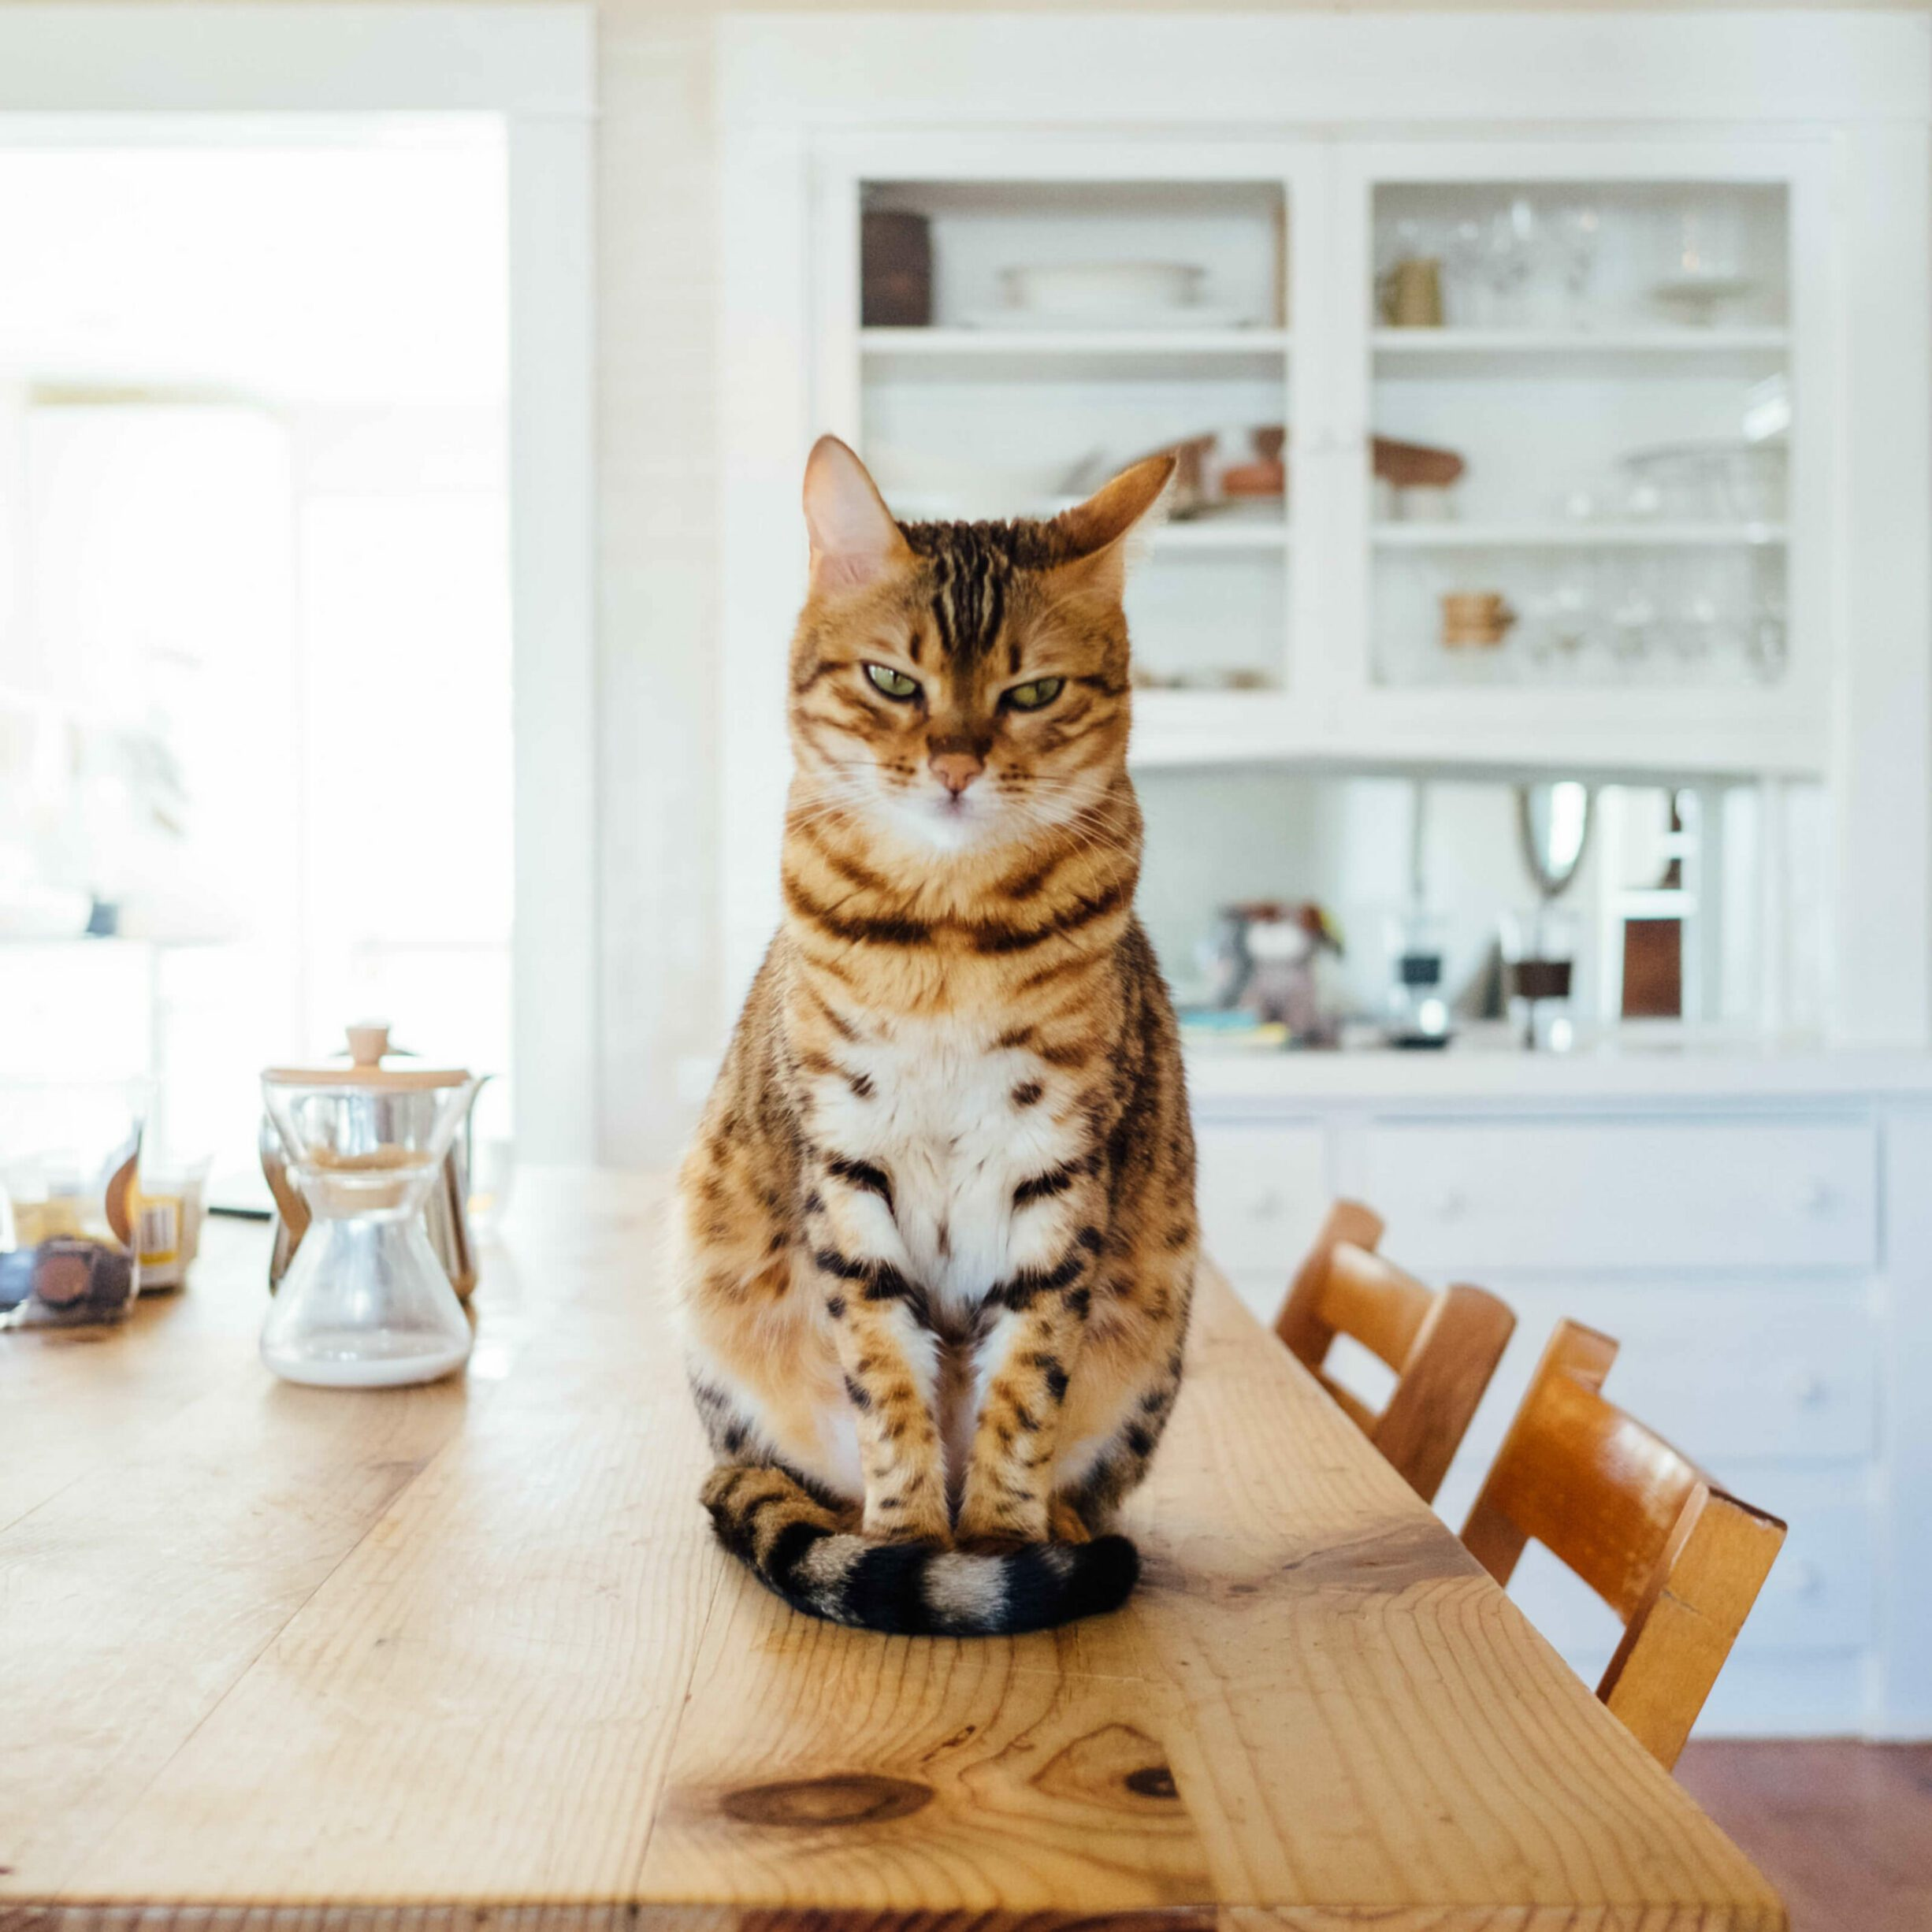 cat sitting on a wooden table